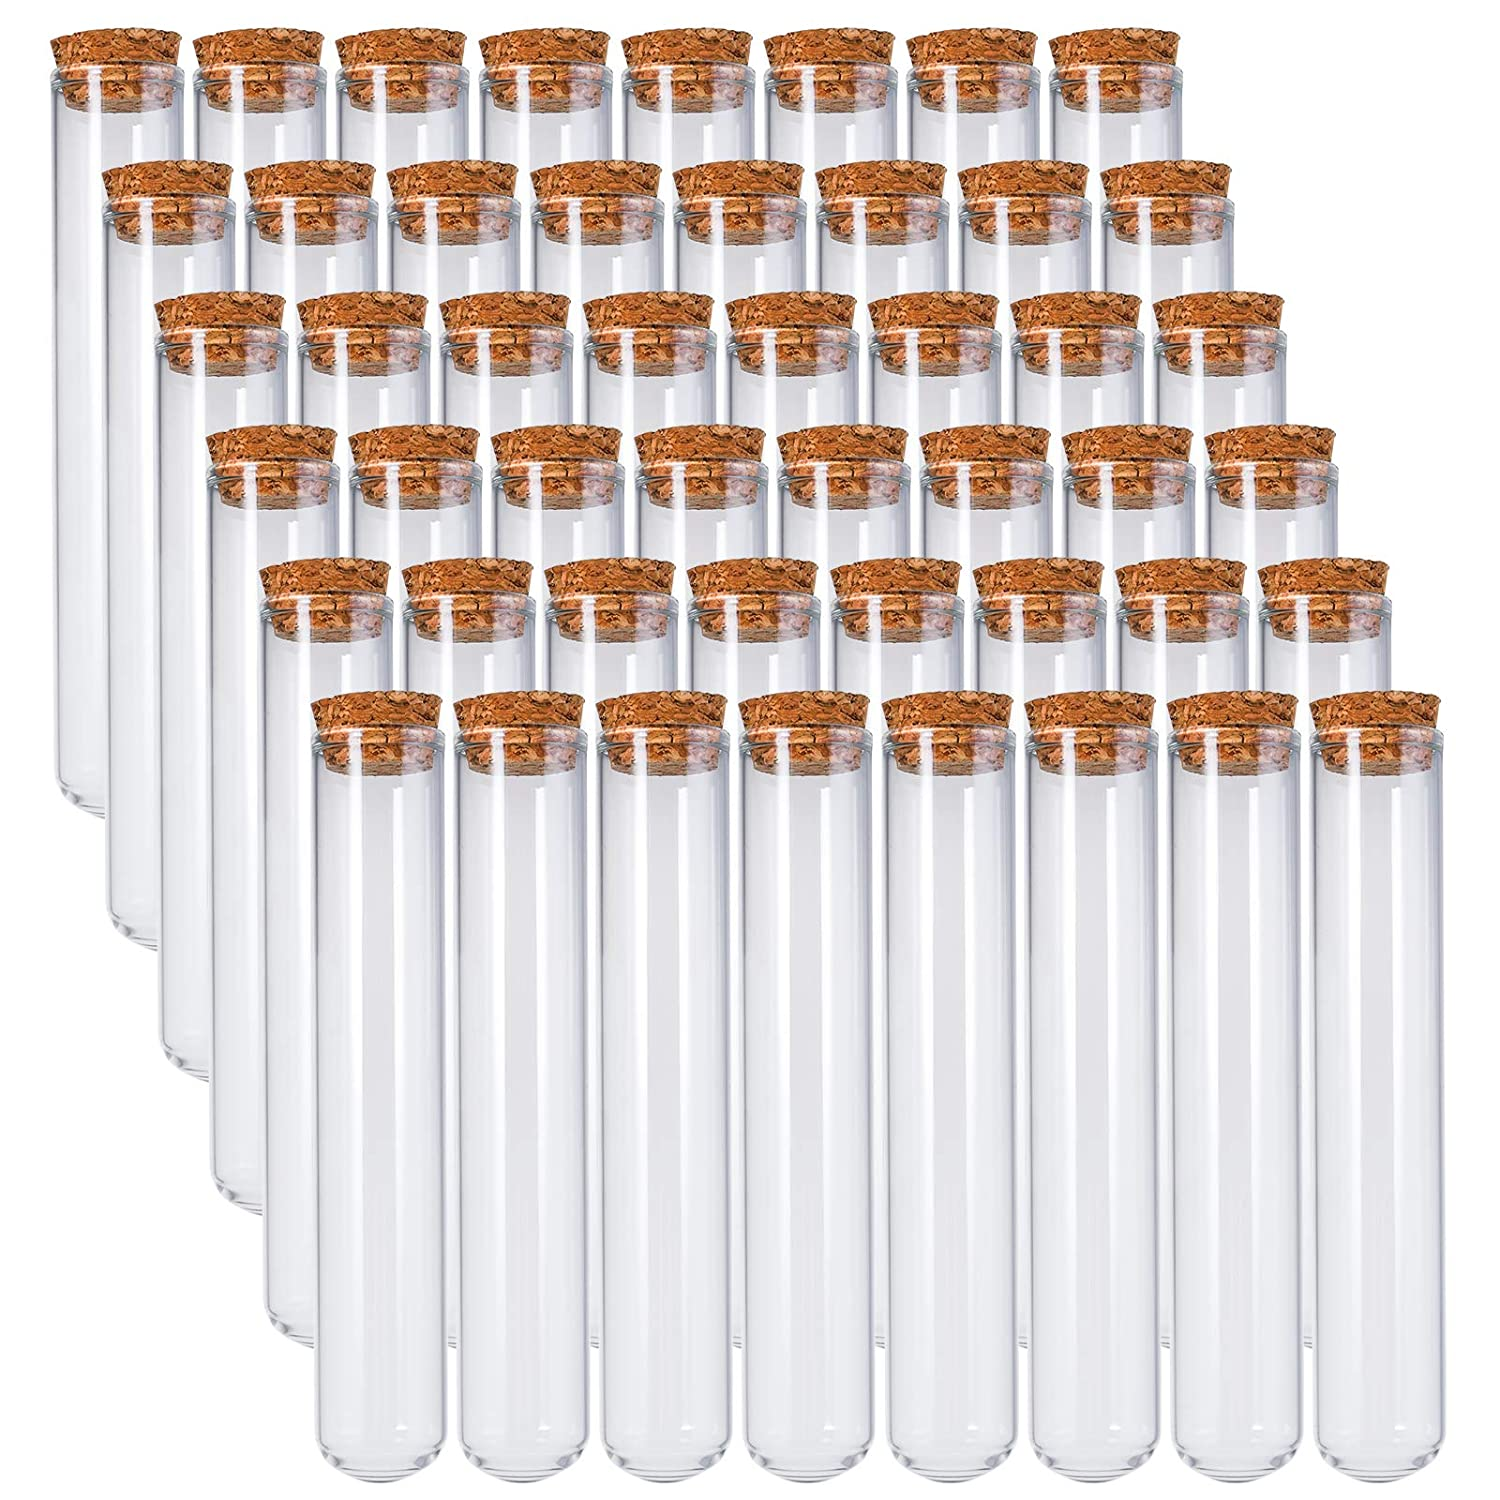 Bekith 48pcs 45ml Glass Test Tubes Portland Mall 25x140mm Stoppers with Max 52% OFF Cork